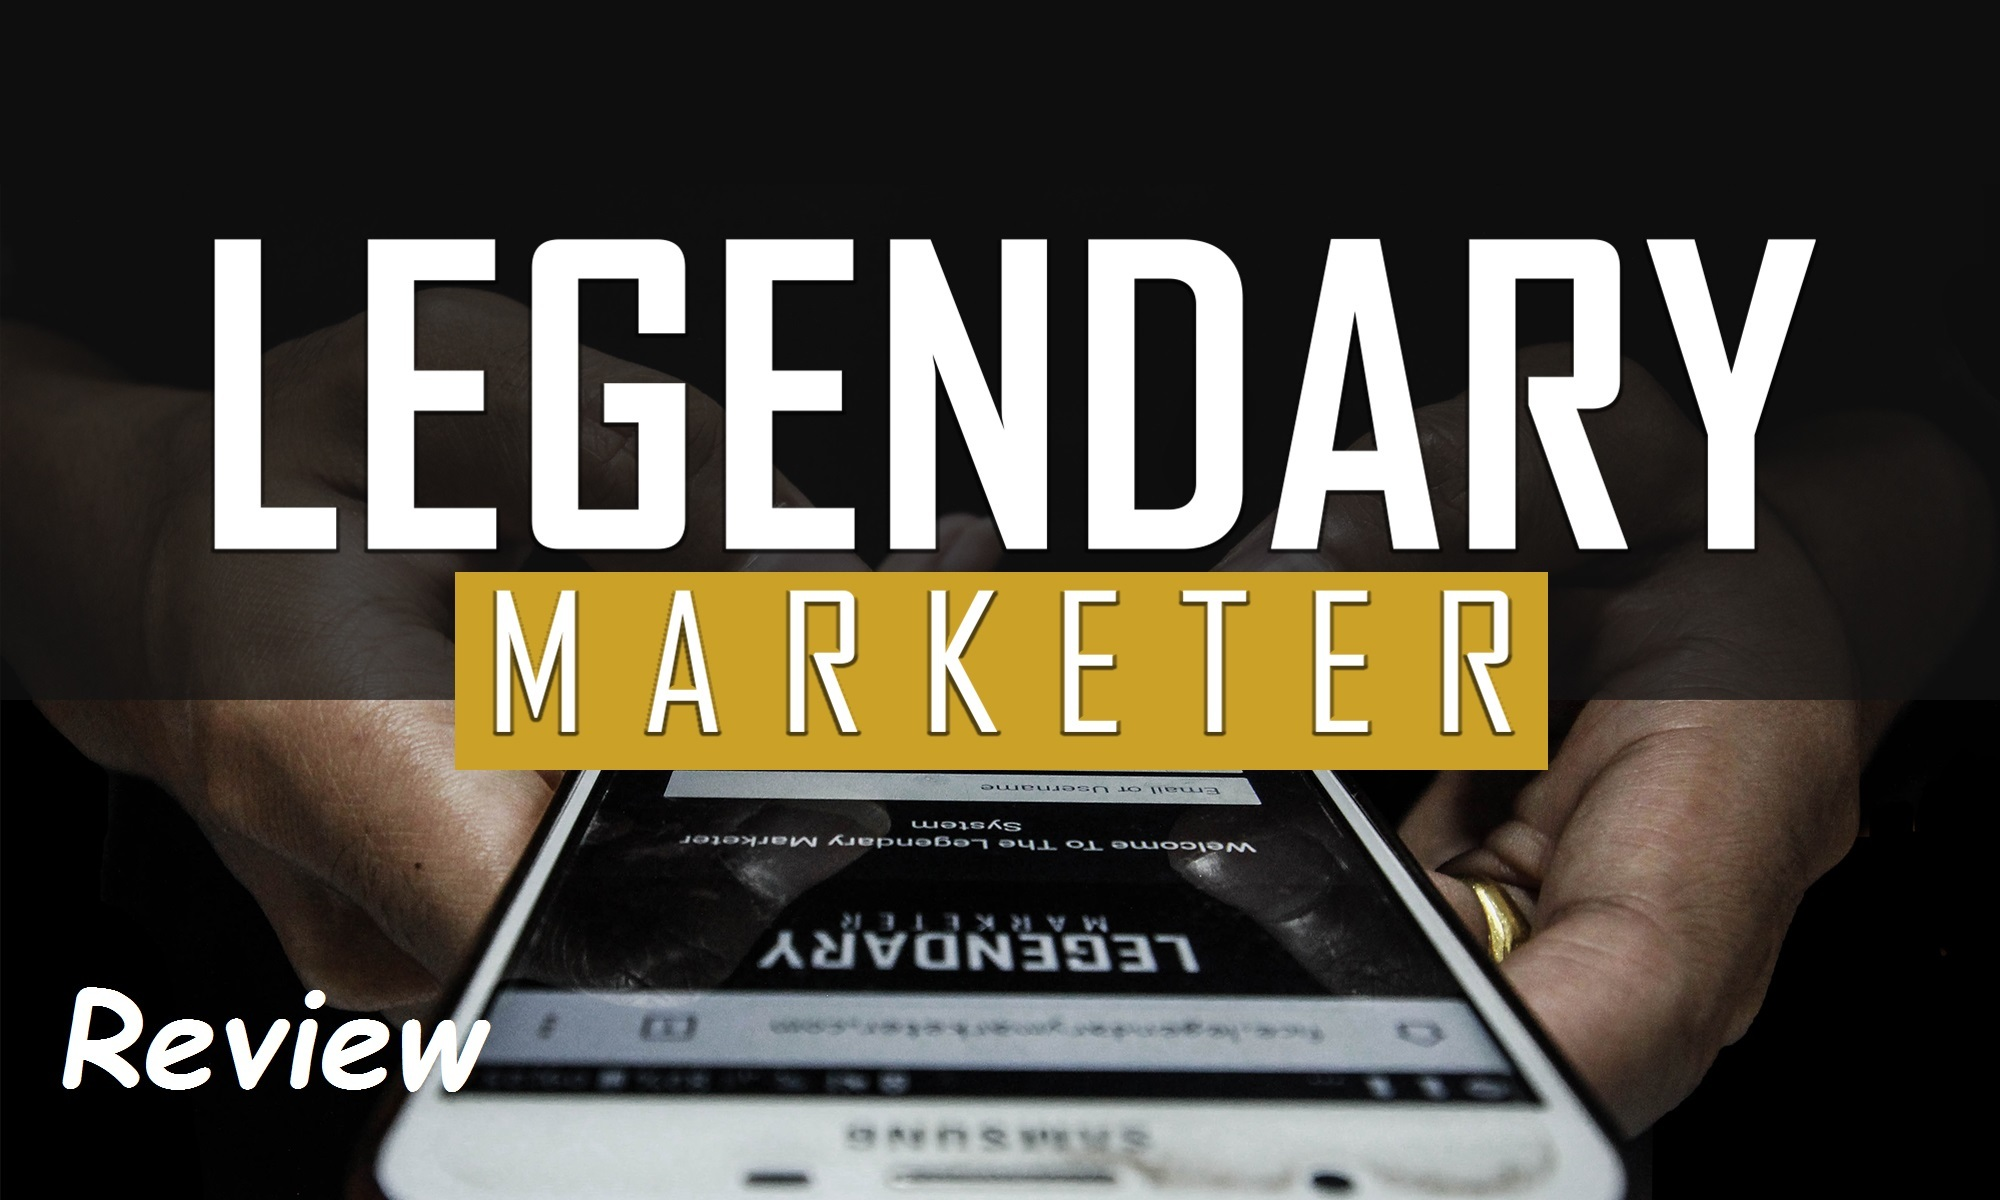 Buy Legendary Marketer Online Voucher Code 100 Off